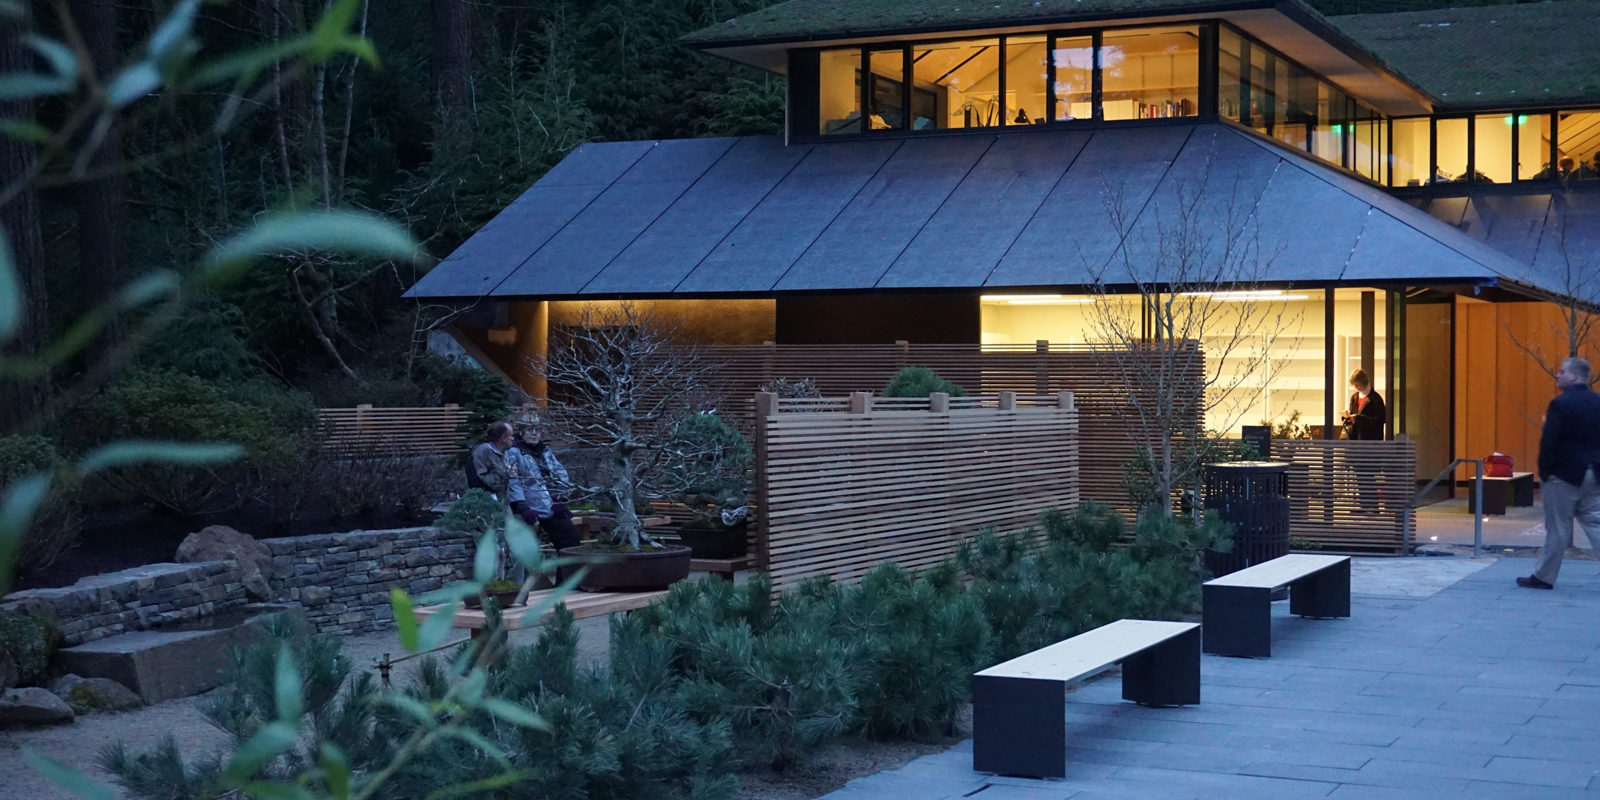 Evening View of the Garden House. Photo by Tyler Quinn